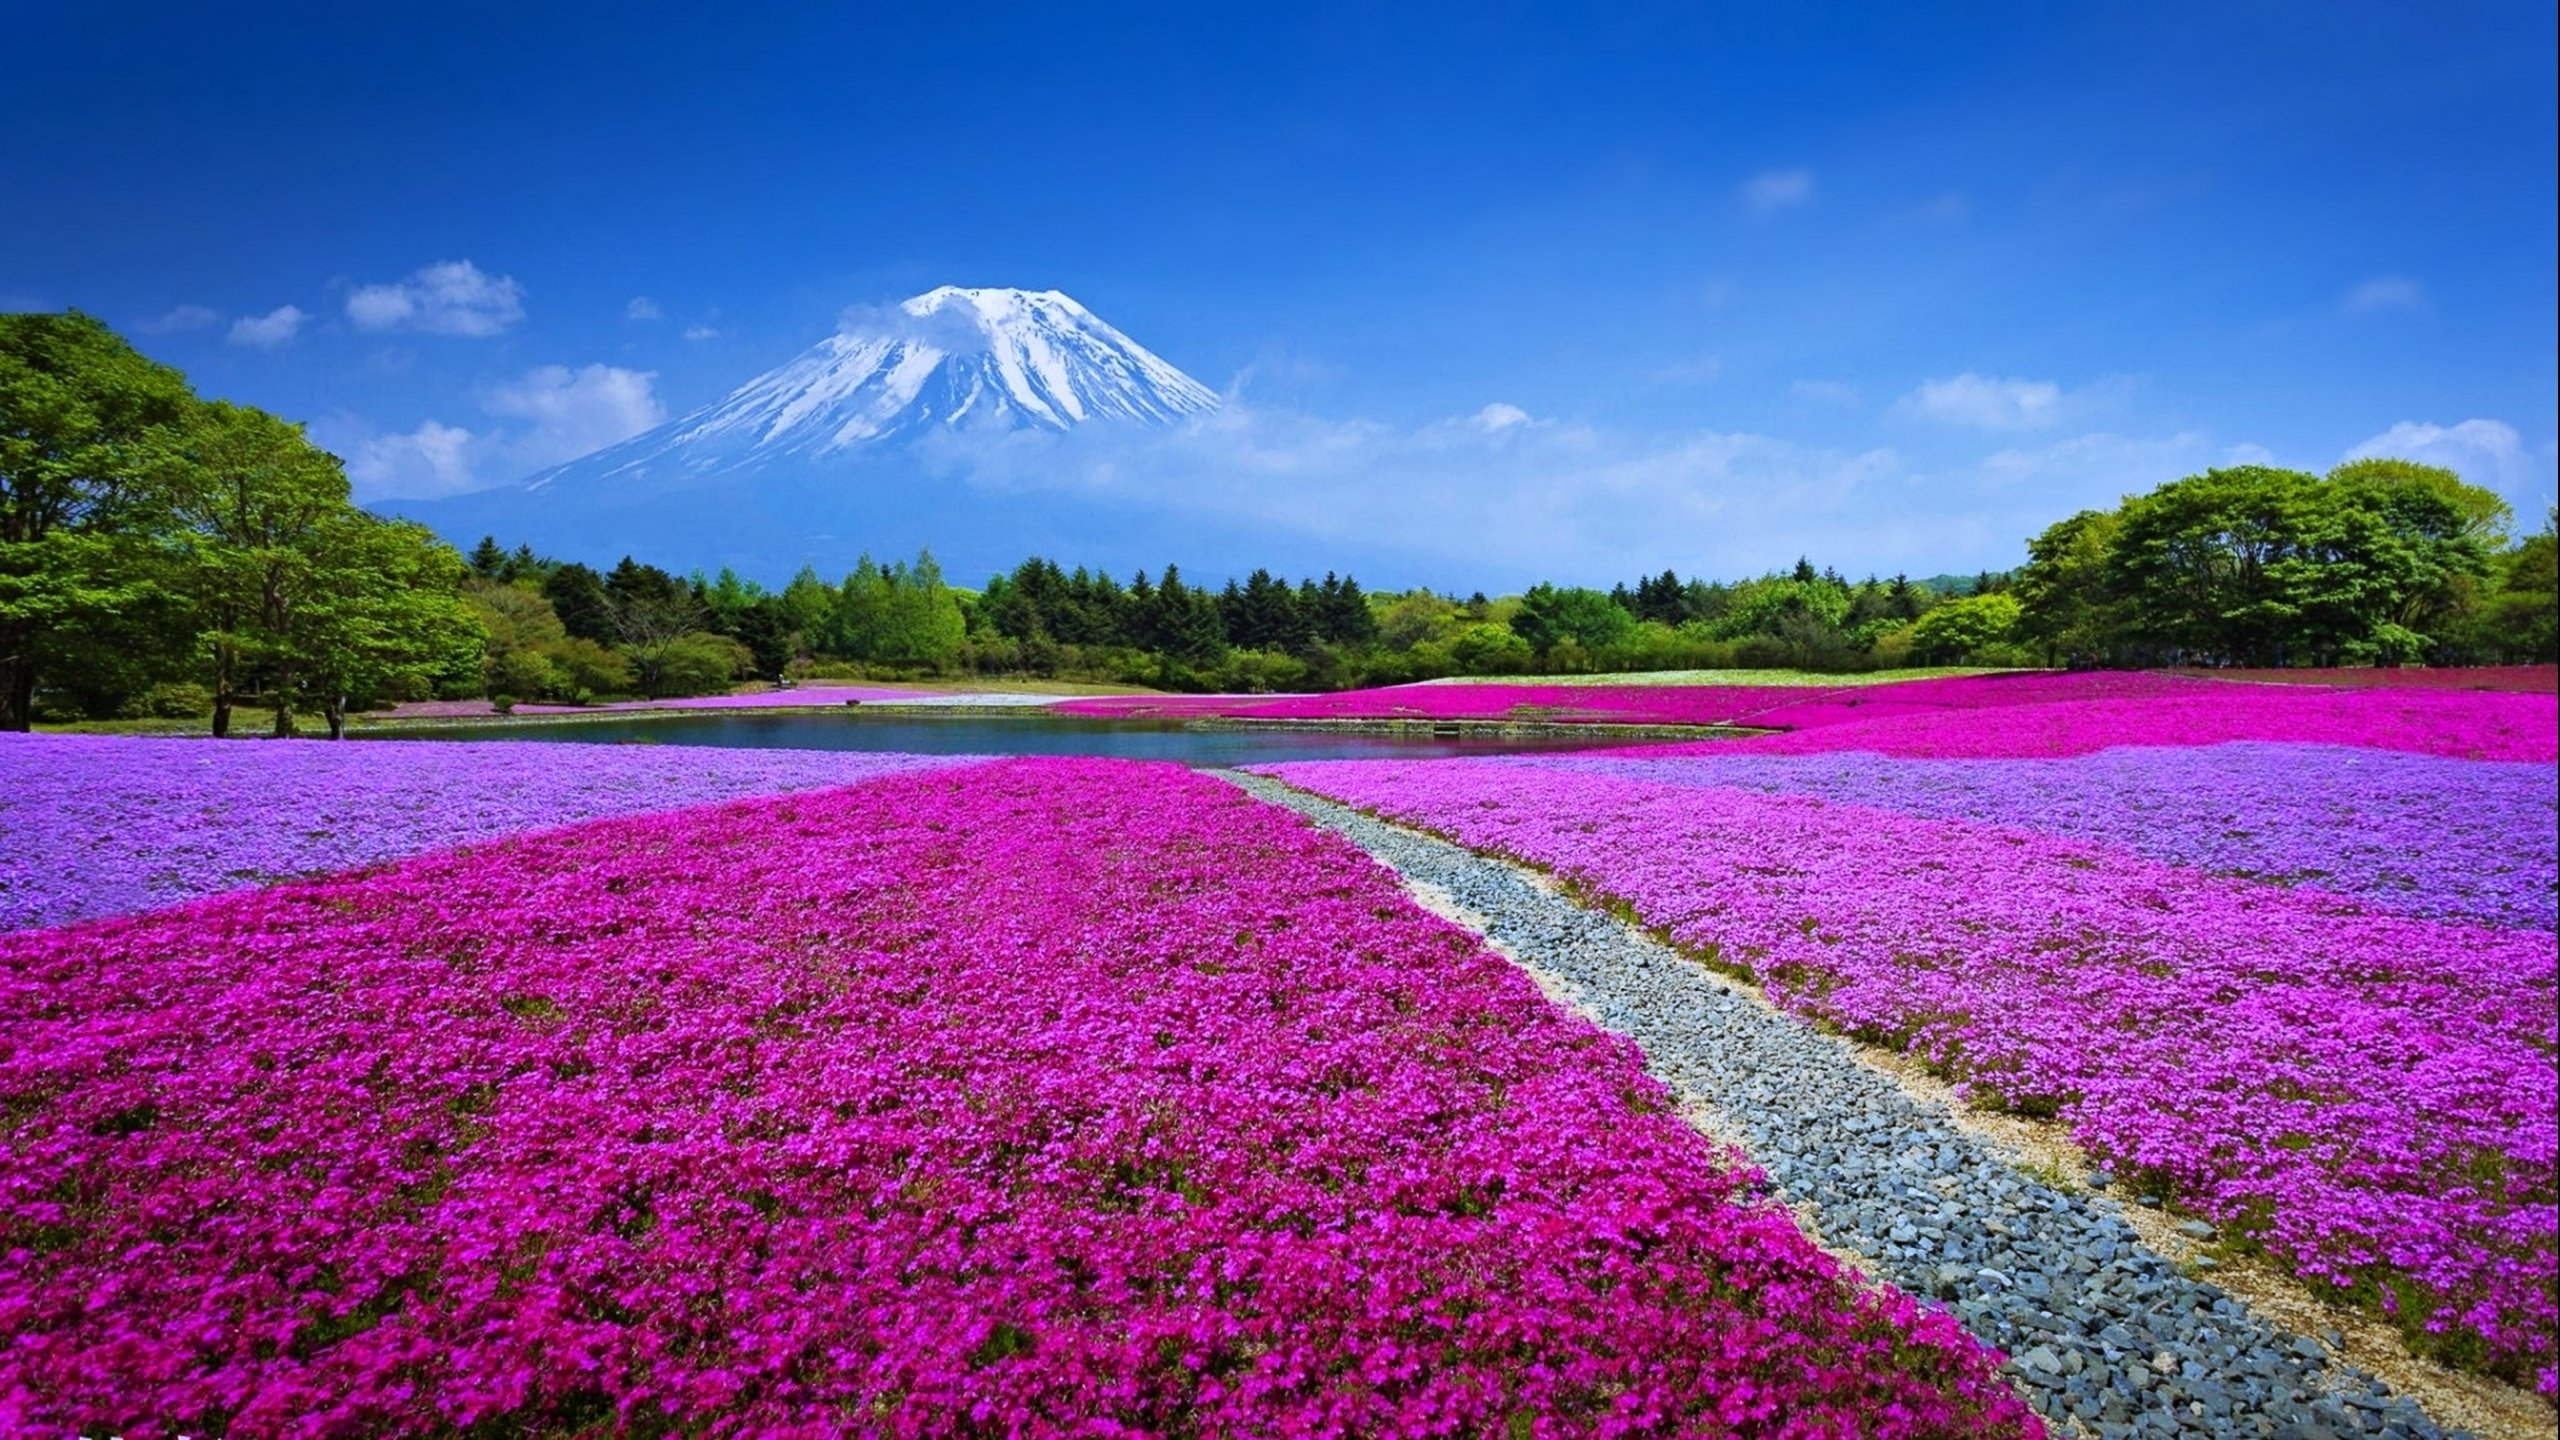 flower flowerrs nature landscape wallpaper 2560x1440